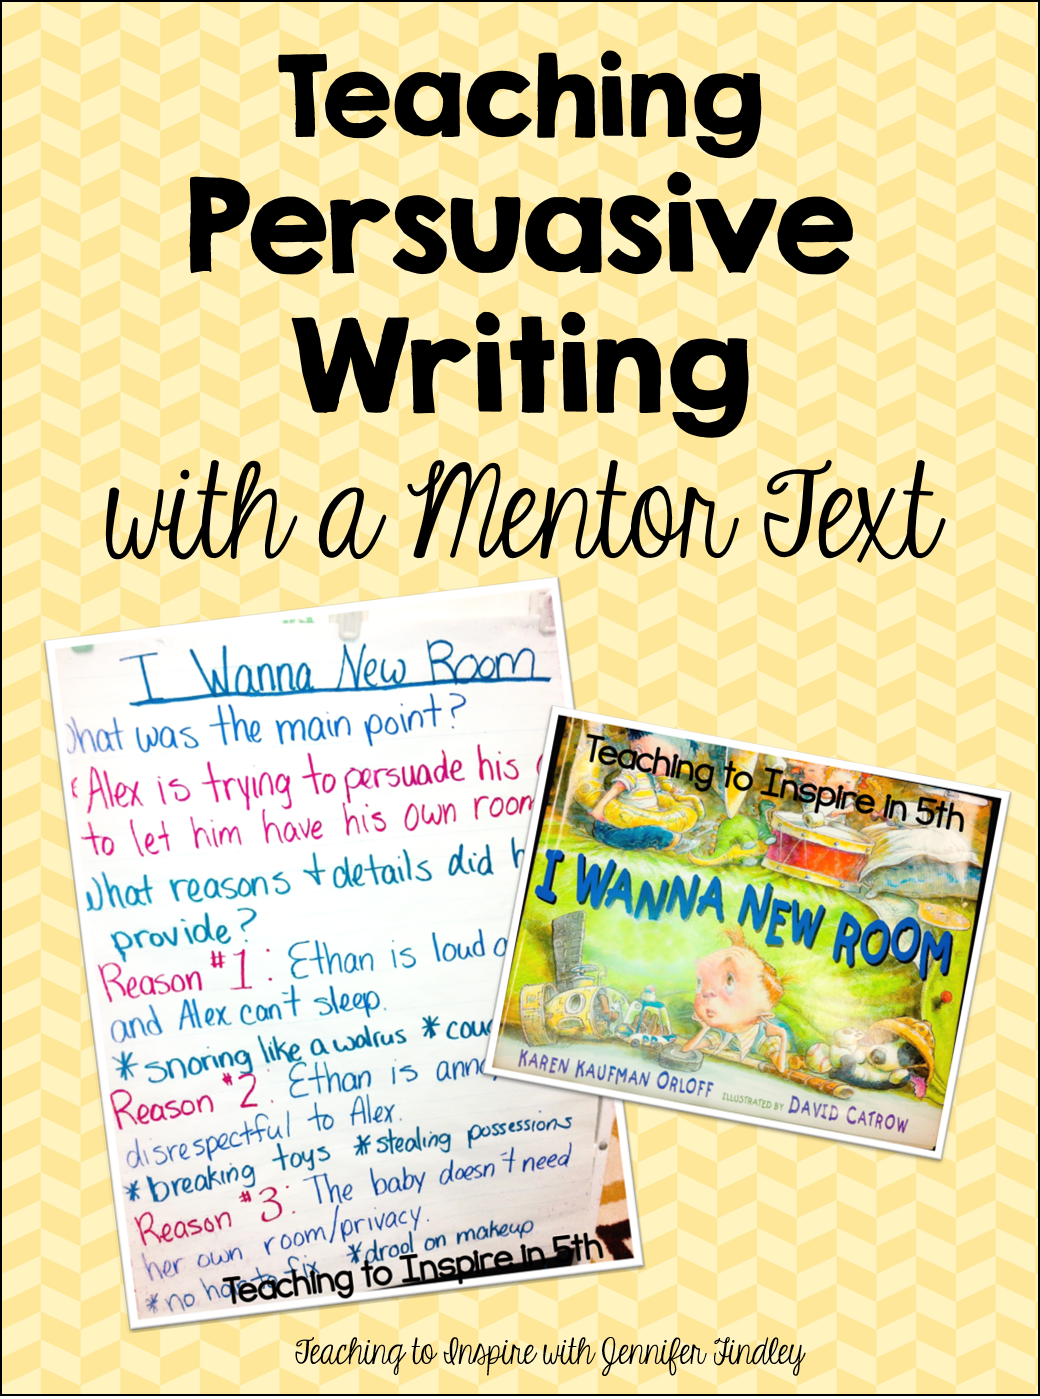 teaching persuasive writing Persuasive writing samples persuasive writing aims to present an idea to a reader and persuade them to agree with the writer's point of view learning to write persuasively is a crucial 'real life' skill for students.